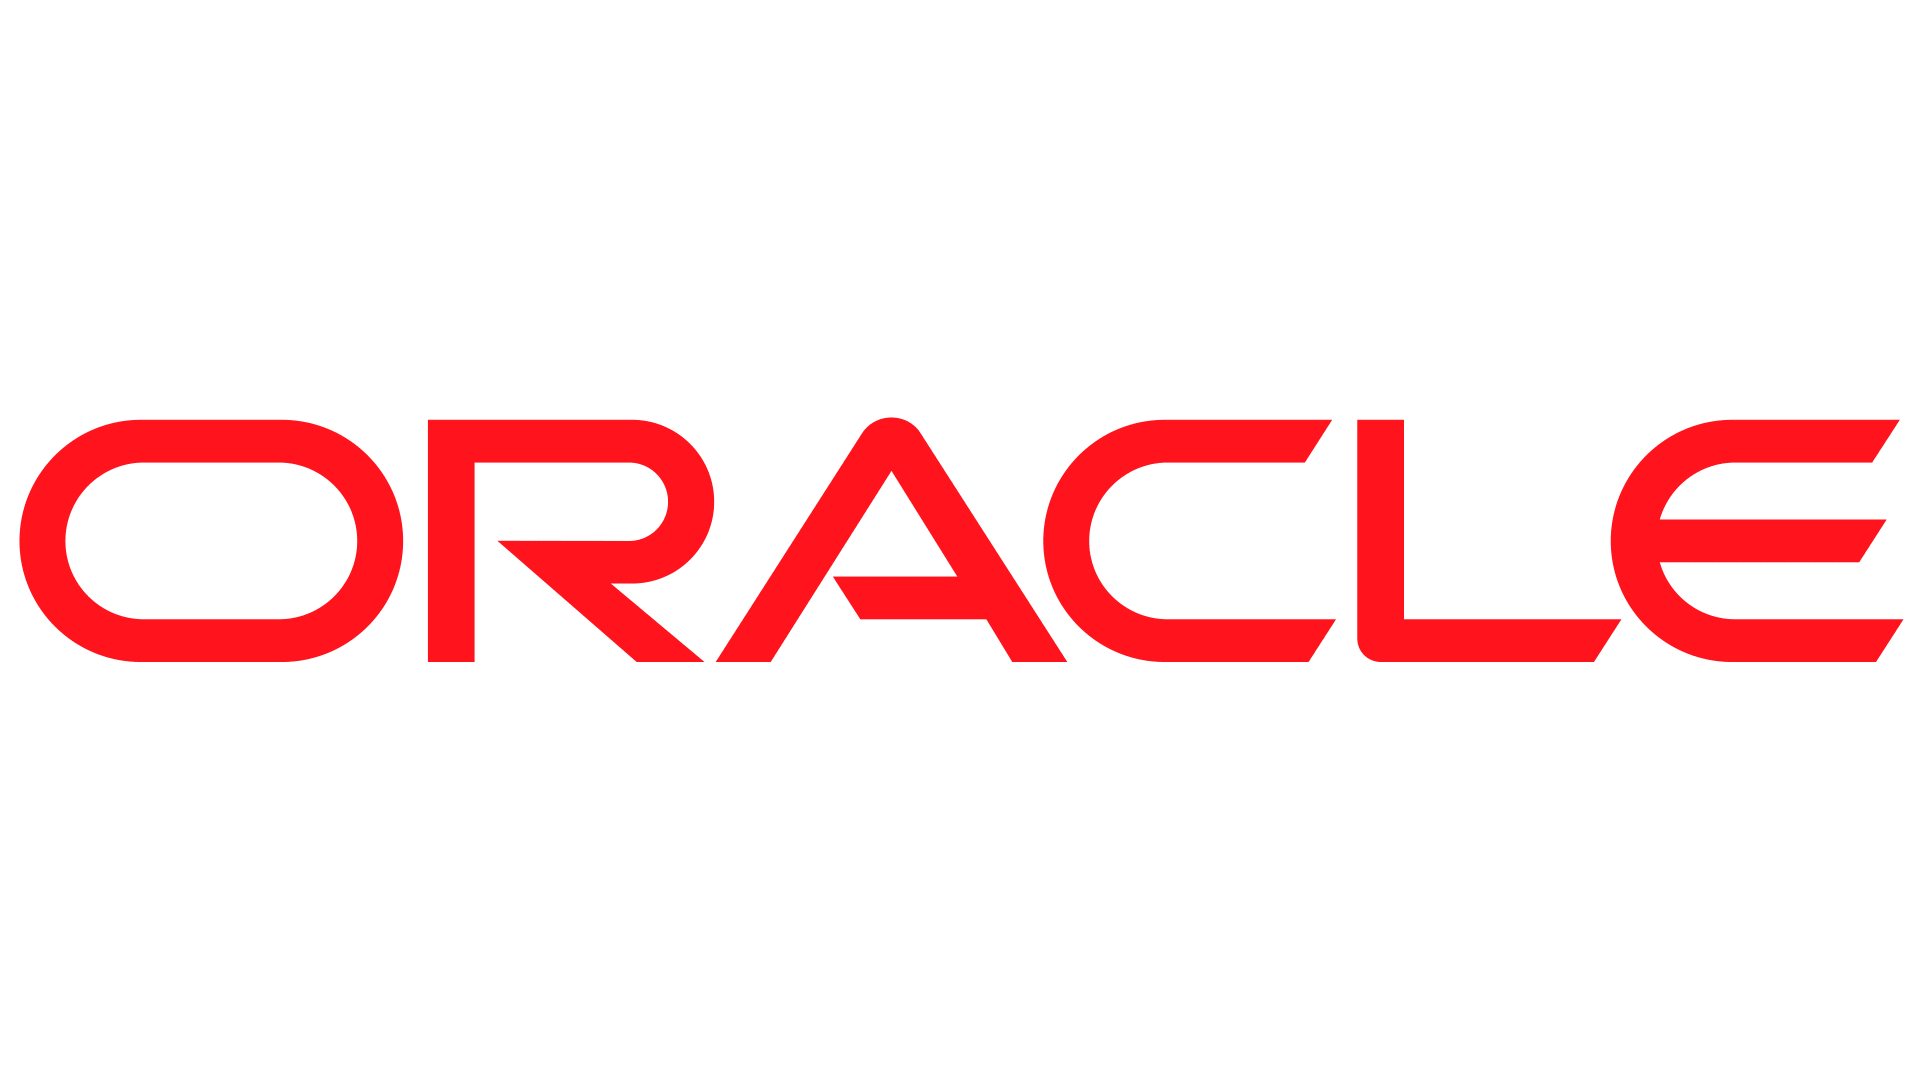 Oracle's move to Austin may spur further California influx and higher home prices